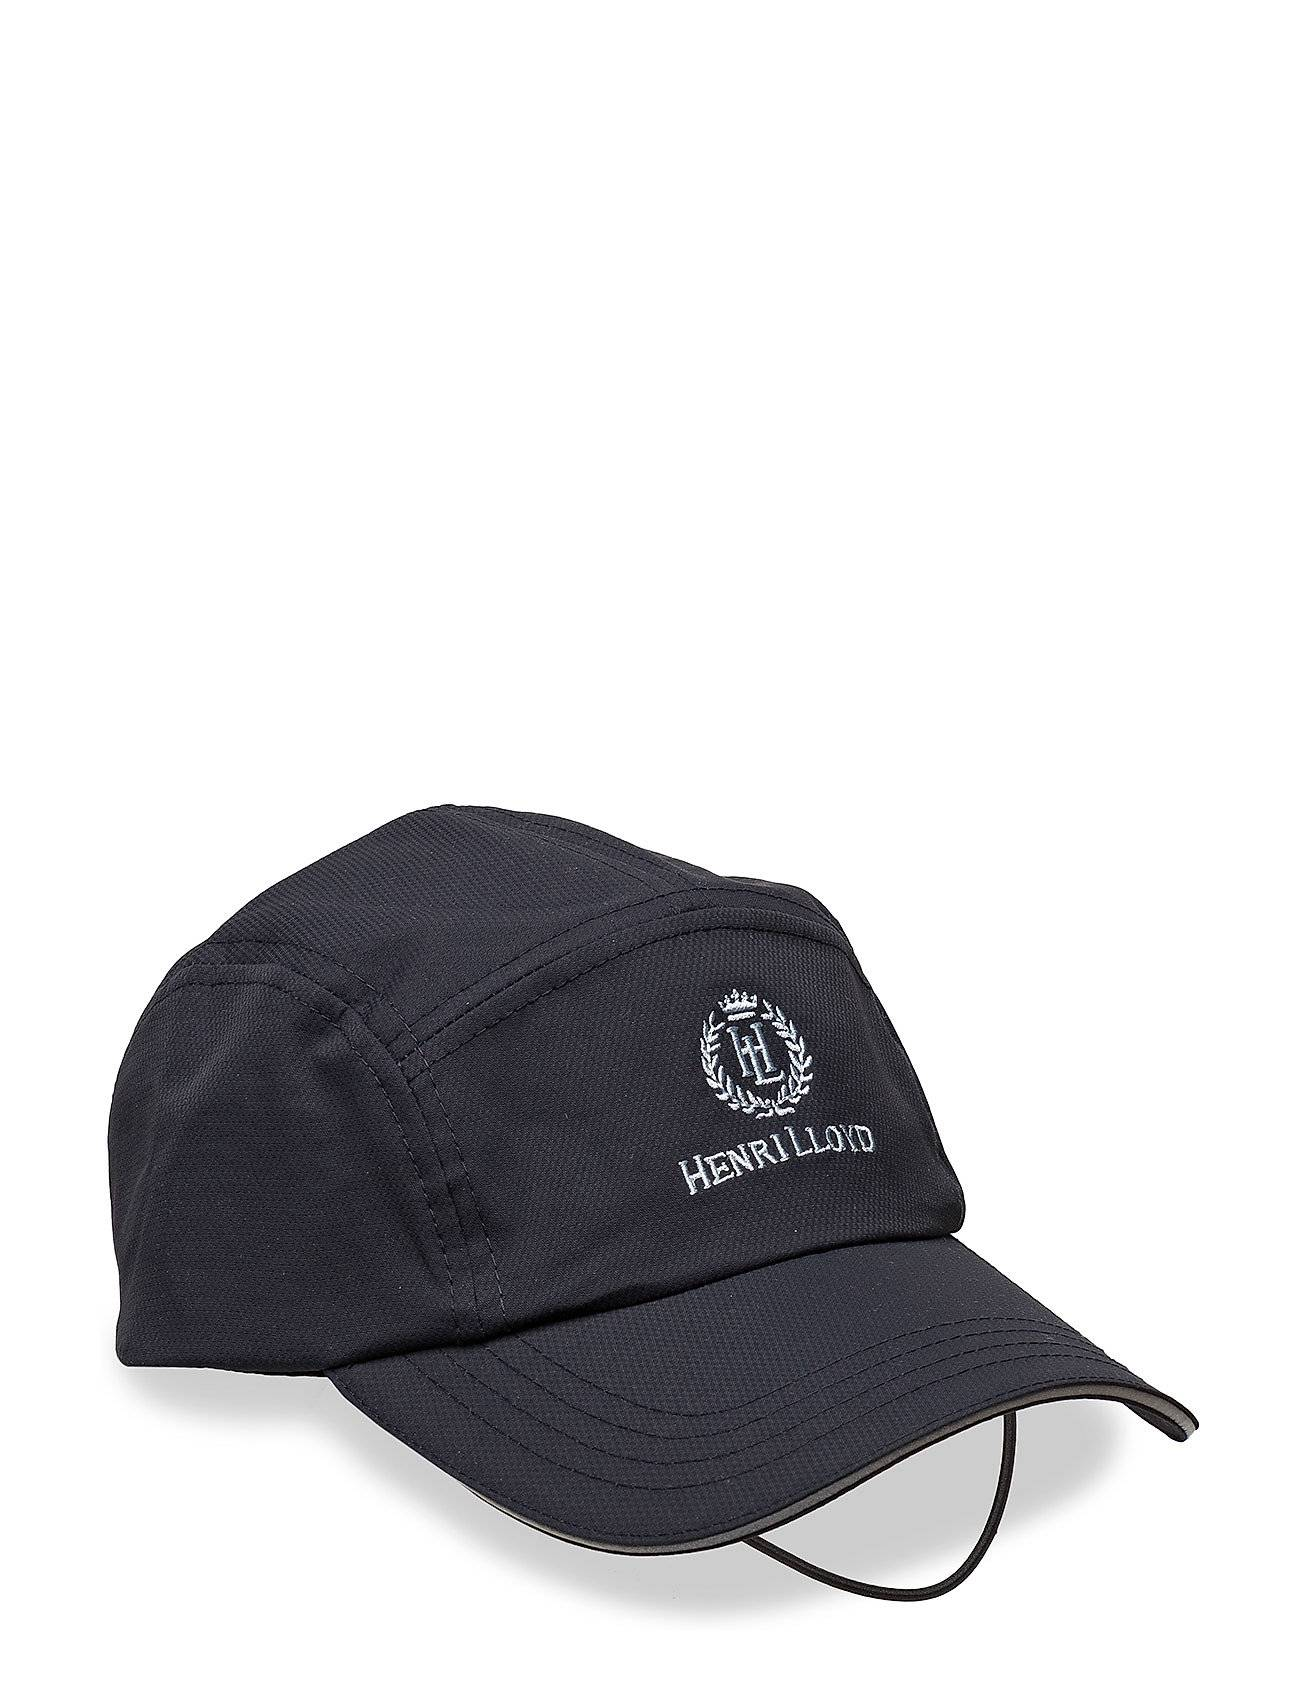 Henri Lloyd Freedom Crew Cap And Retainer